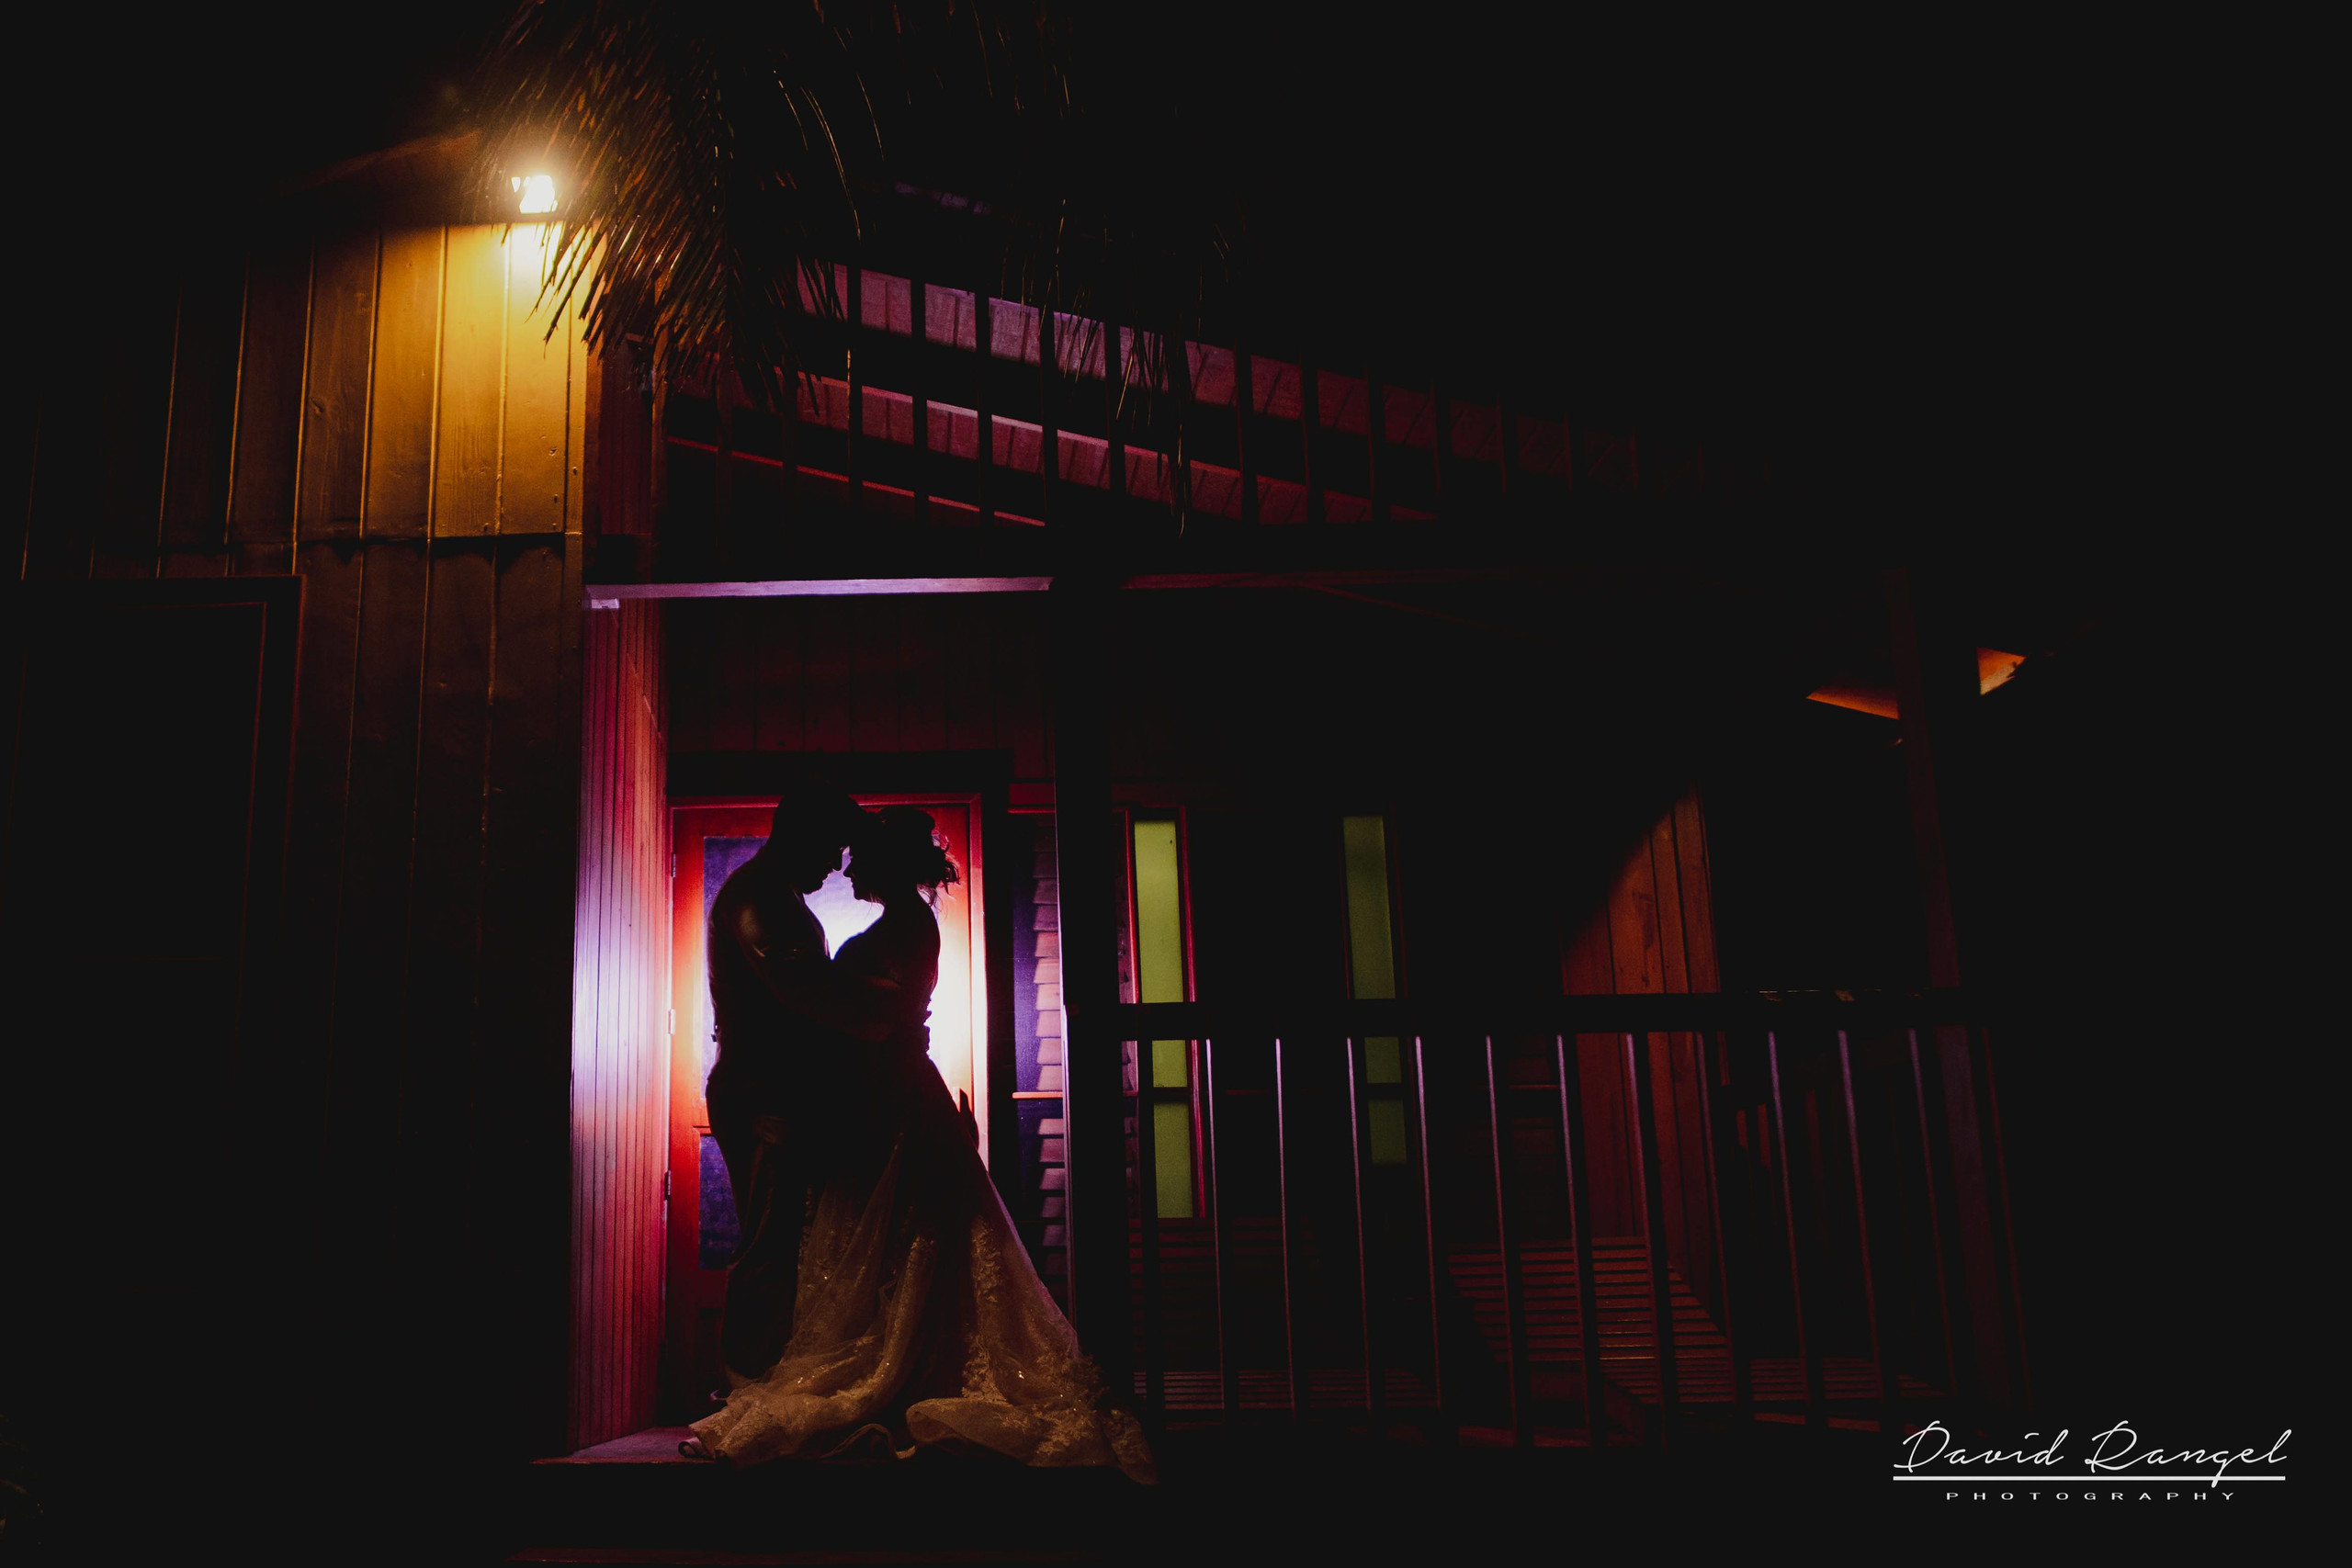 bride+groom+beach+session+happy+love+couple+celebration+wedding+photo+beach+caribean+sea+photographer+david+rangel+dress+suit+villa+chenera+main+entrance+reception+kiss+back+light